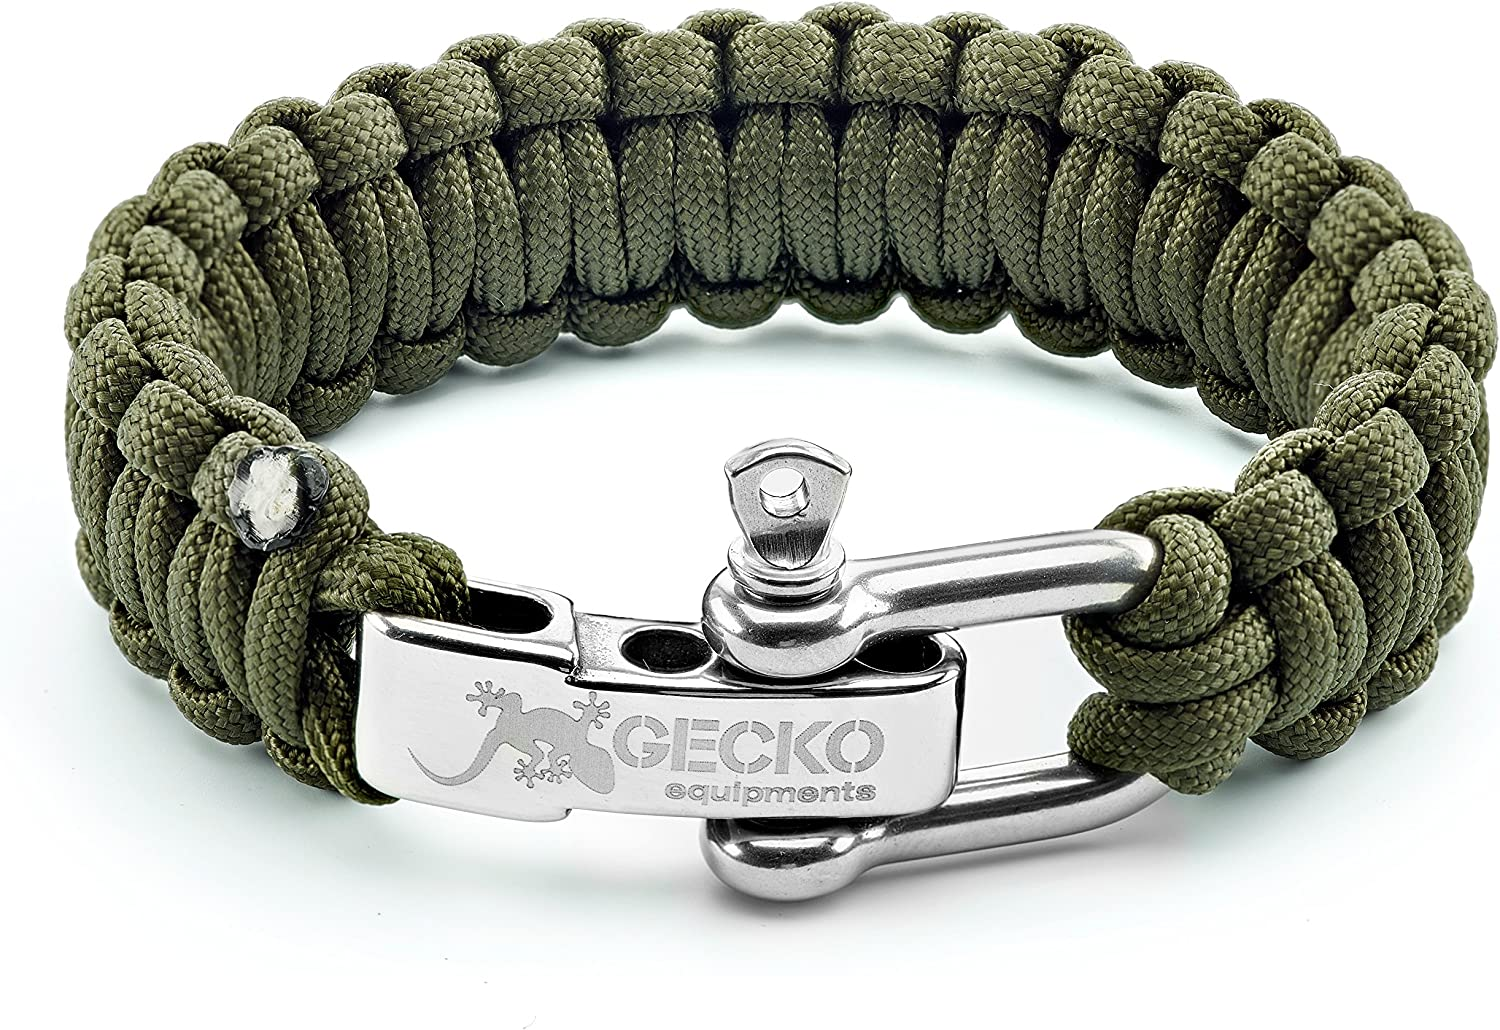 Desert Camo R6X6 Survival Bracelet with Stainless Steel Bow Shackle